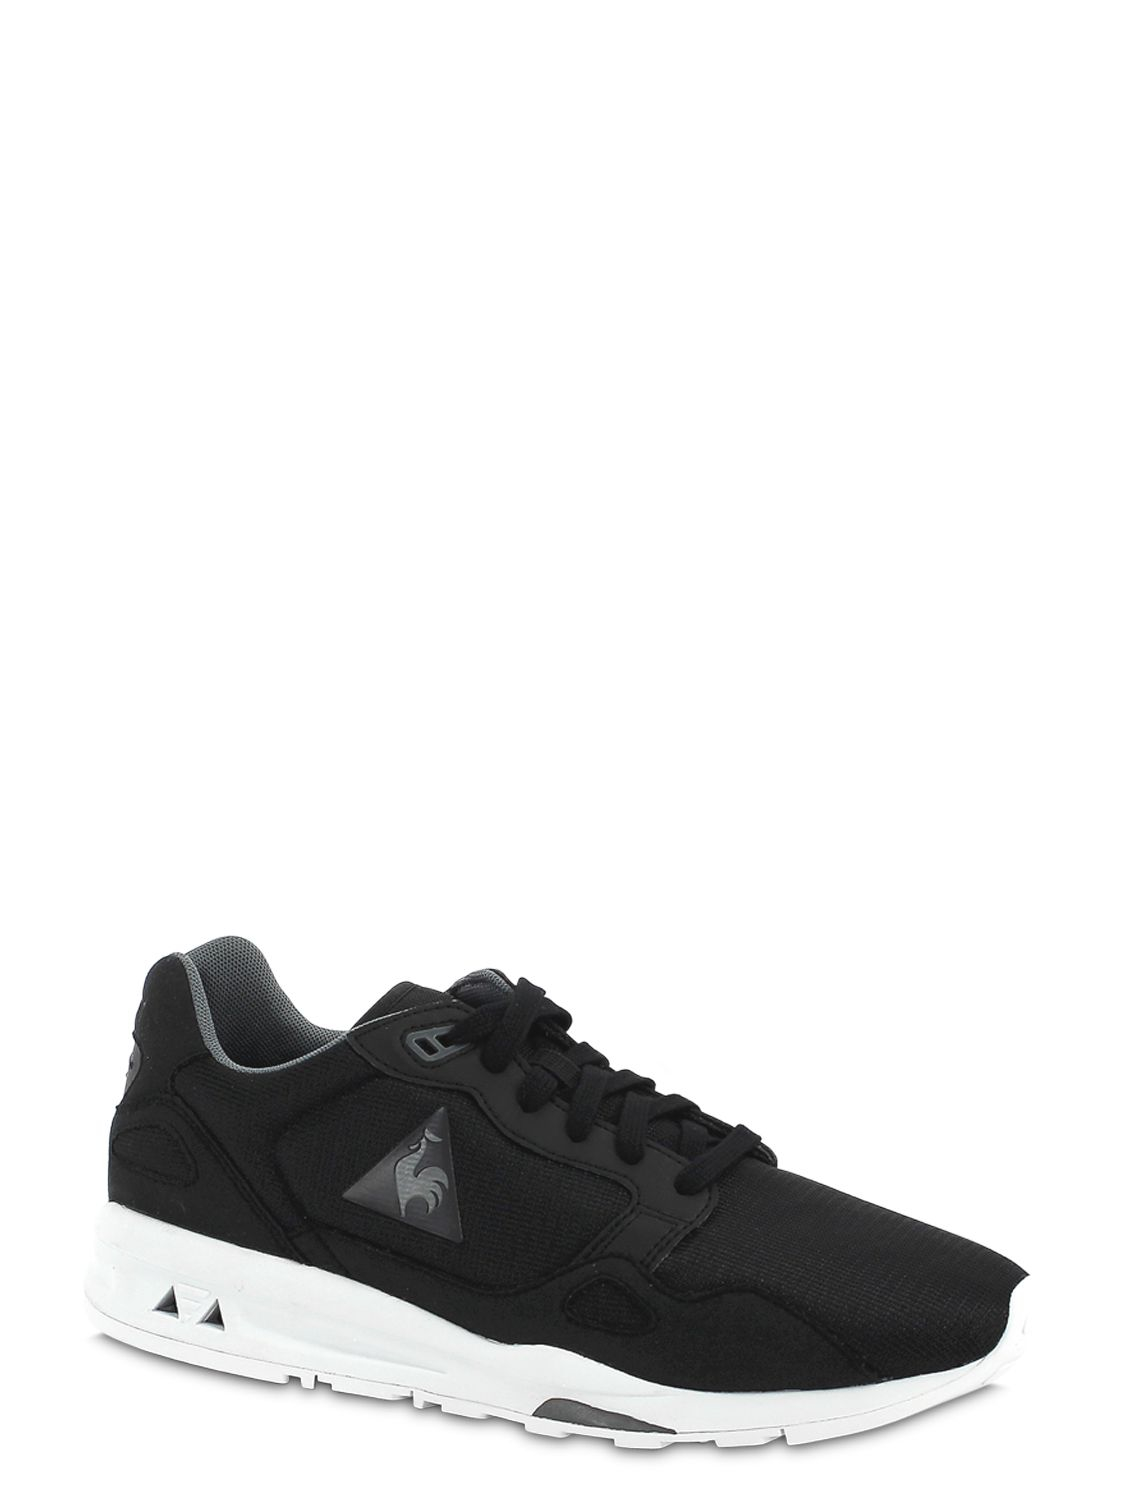 0c8fc364f57f Lyst - Le Coq Sportif Lcs 900 Mesh   Faux Suede Sneakers in Black